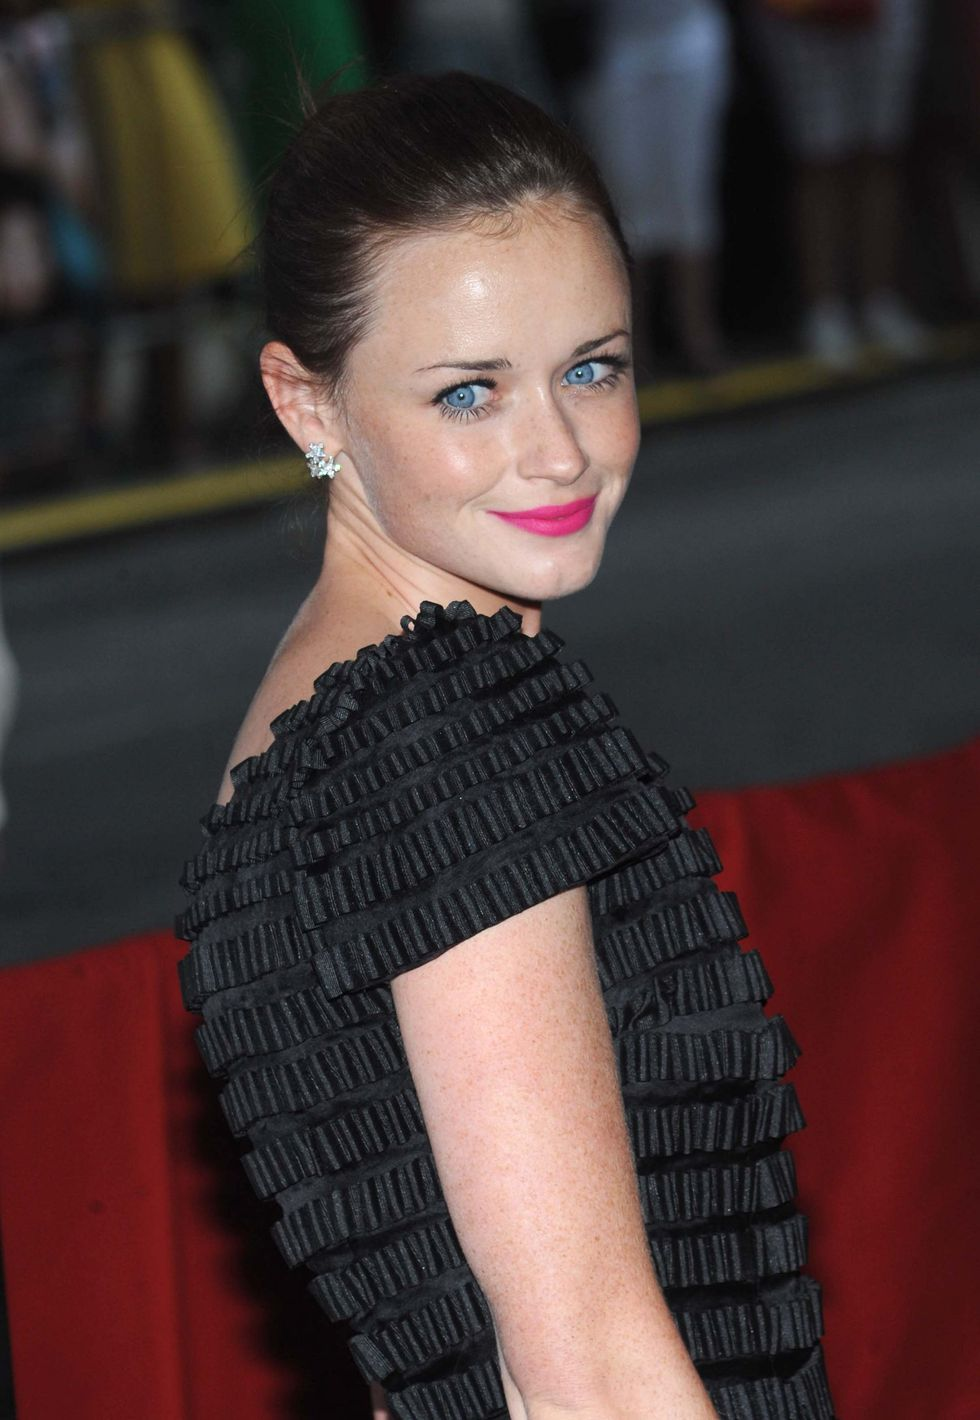 alexis-bledel-the-sisterhood-of-the-traveling-pants-2-premiere-in-new-york-01